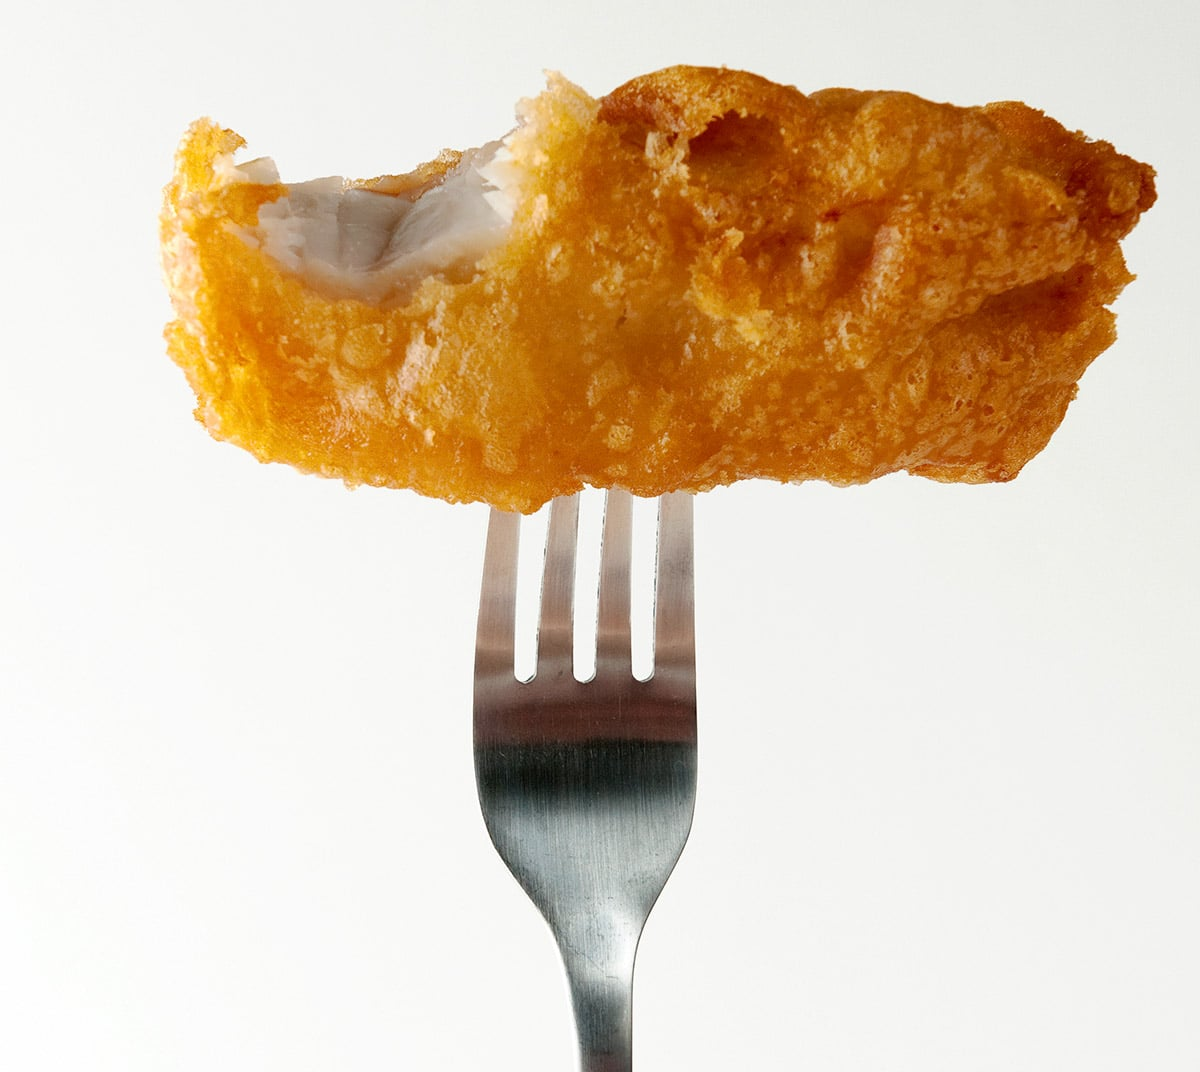 Beer battered fish and chips on a fork